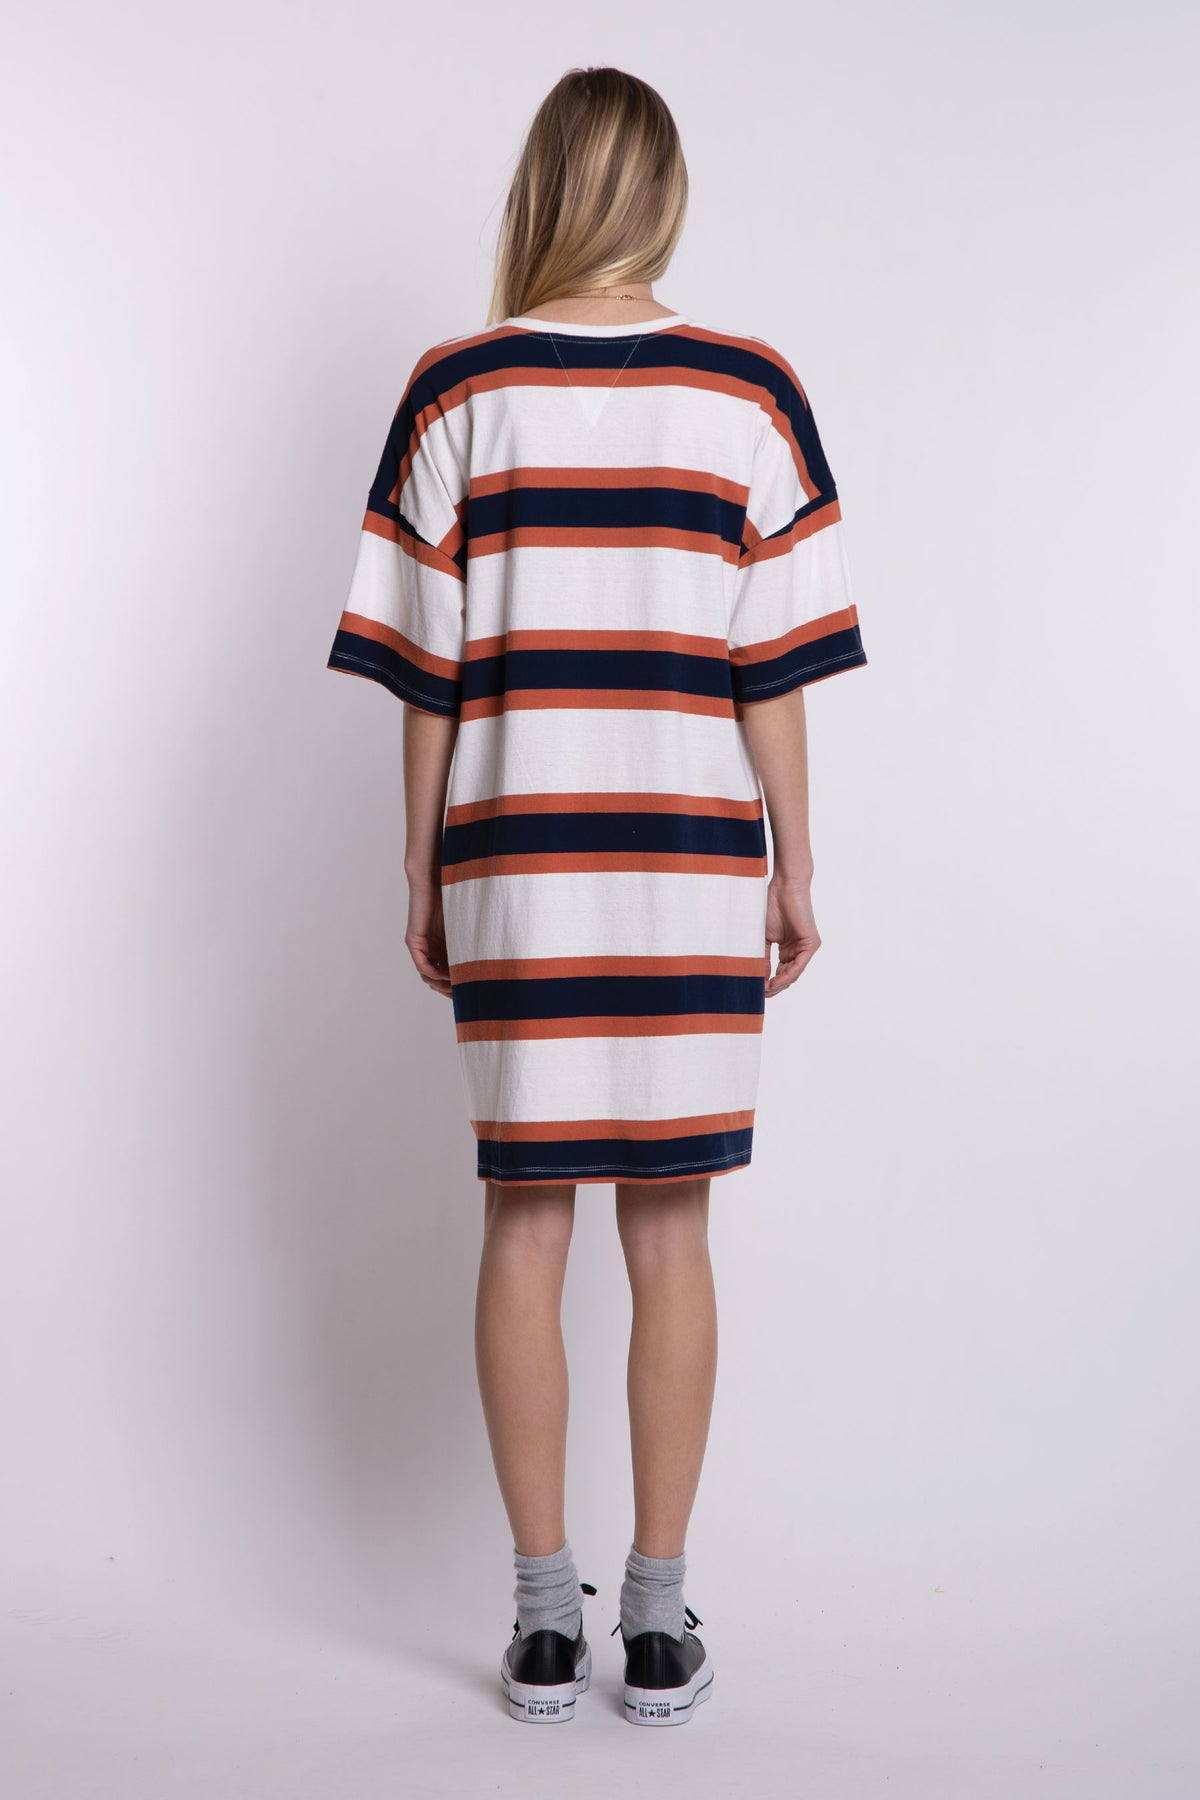 Matilda Oversized Tee Dress - Brown/Navy Stripe